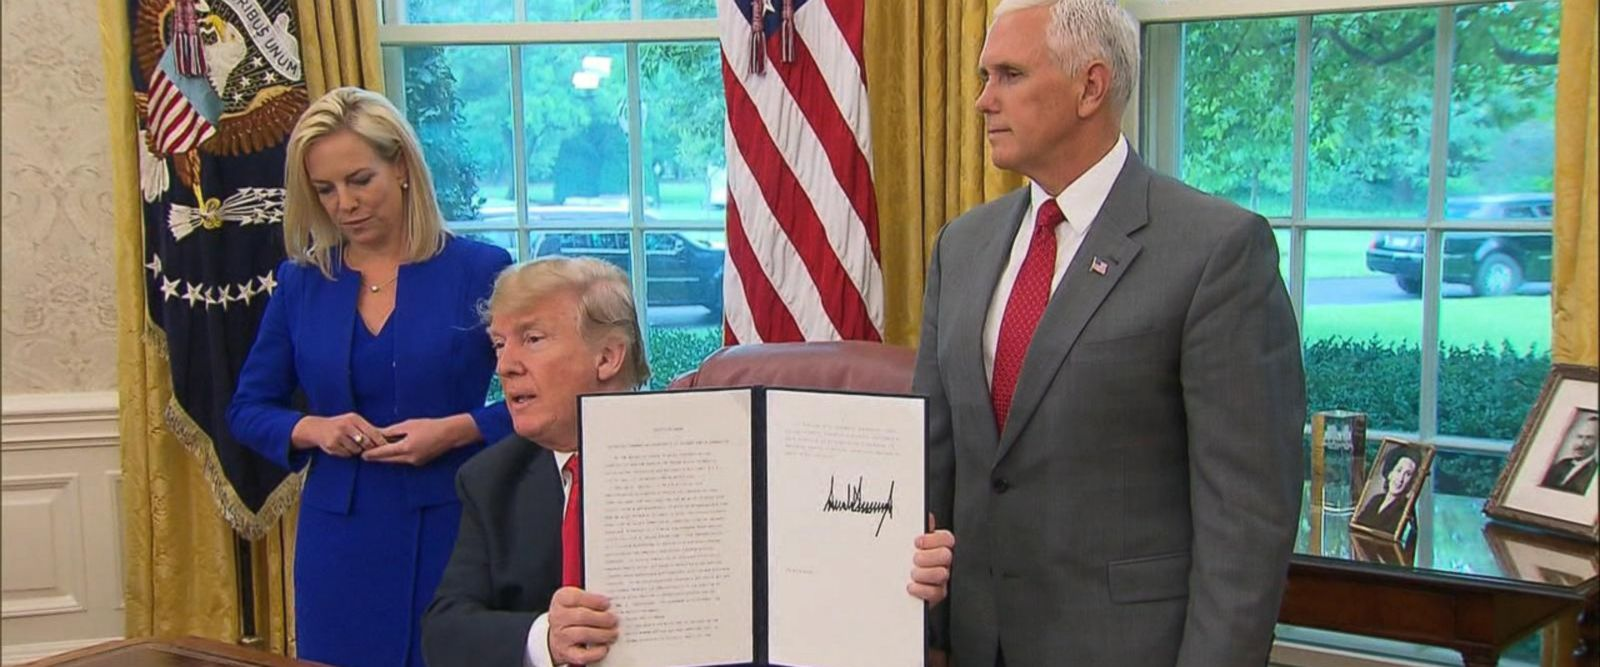 VIDEO: Reaction to Trump's order ending family separations